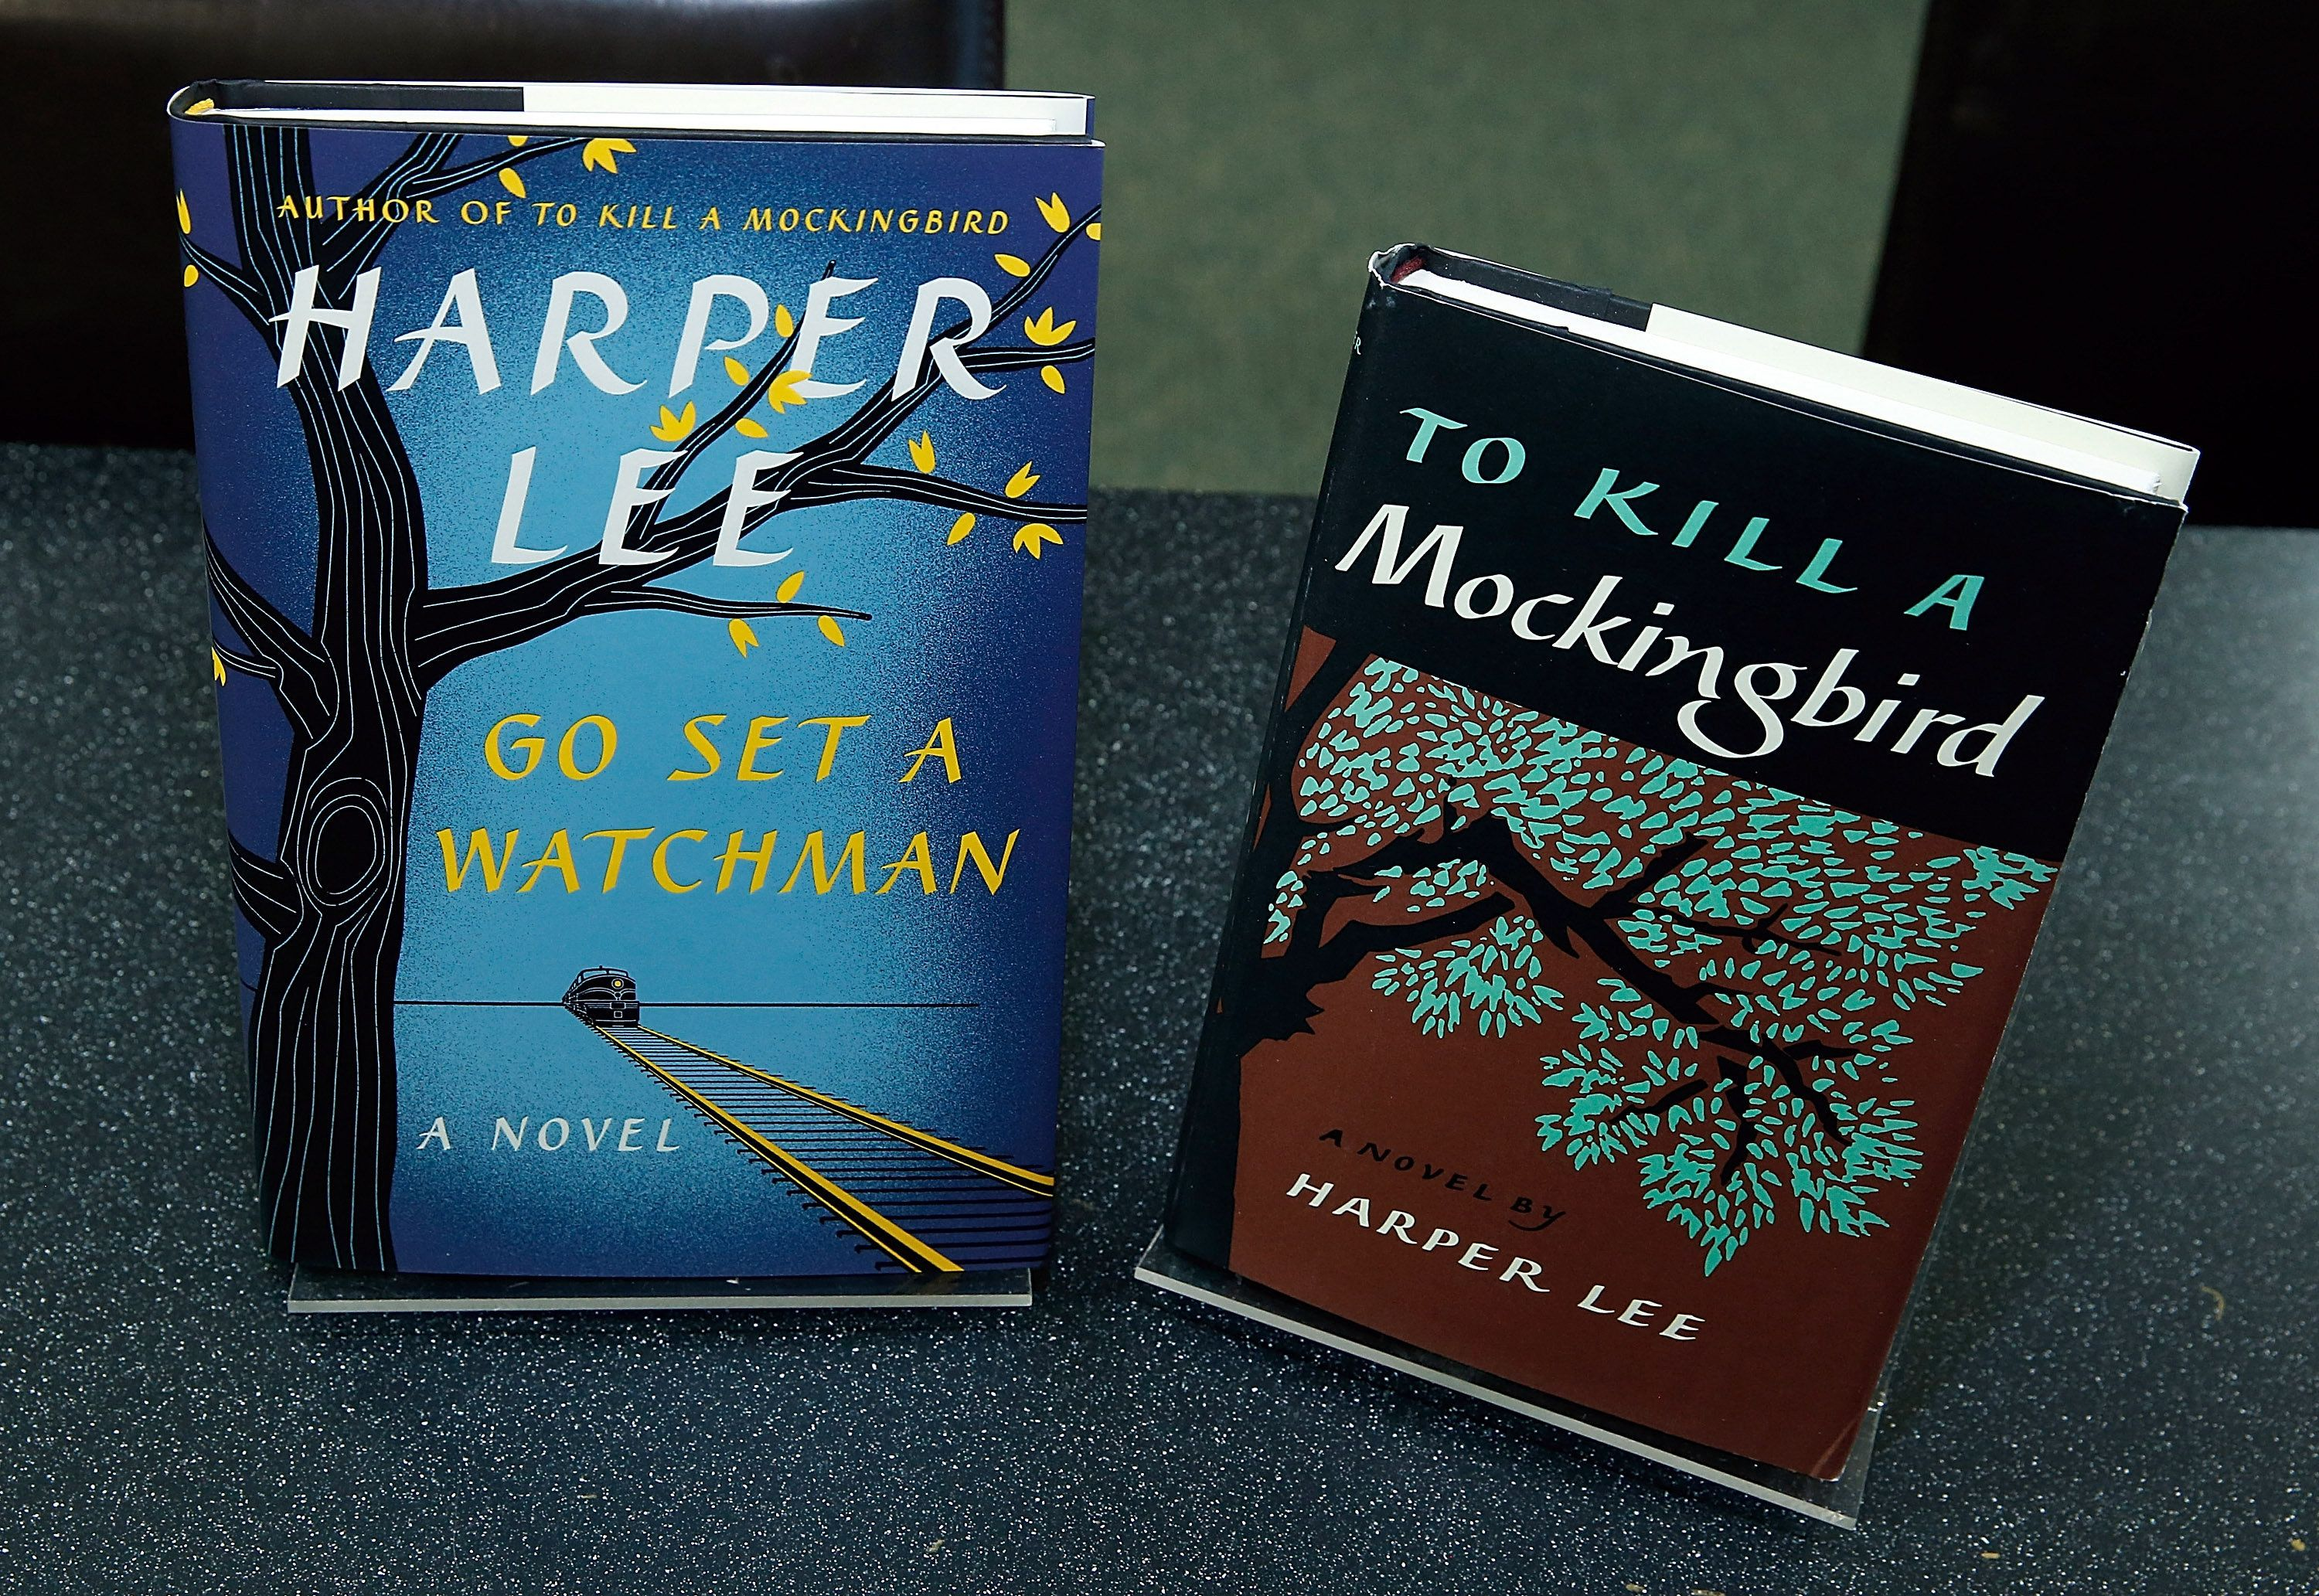 NEW YORK, NY - JULY 13:  Harperl Lee's recently found edition of 'Go Set a Watchman' to be released on July 14 is exhibited  along a new edition of ' To Kill a Mockingbird' by the same author during theHarper Lee celebration with Wally Lamb and Leslie Uggams in conversation with Bill Goldstein at Barnes & Noble Union Square on July 13, 2015 in New York City.  (Photo by John Lamparski/WireImage)